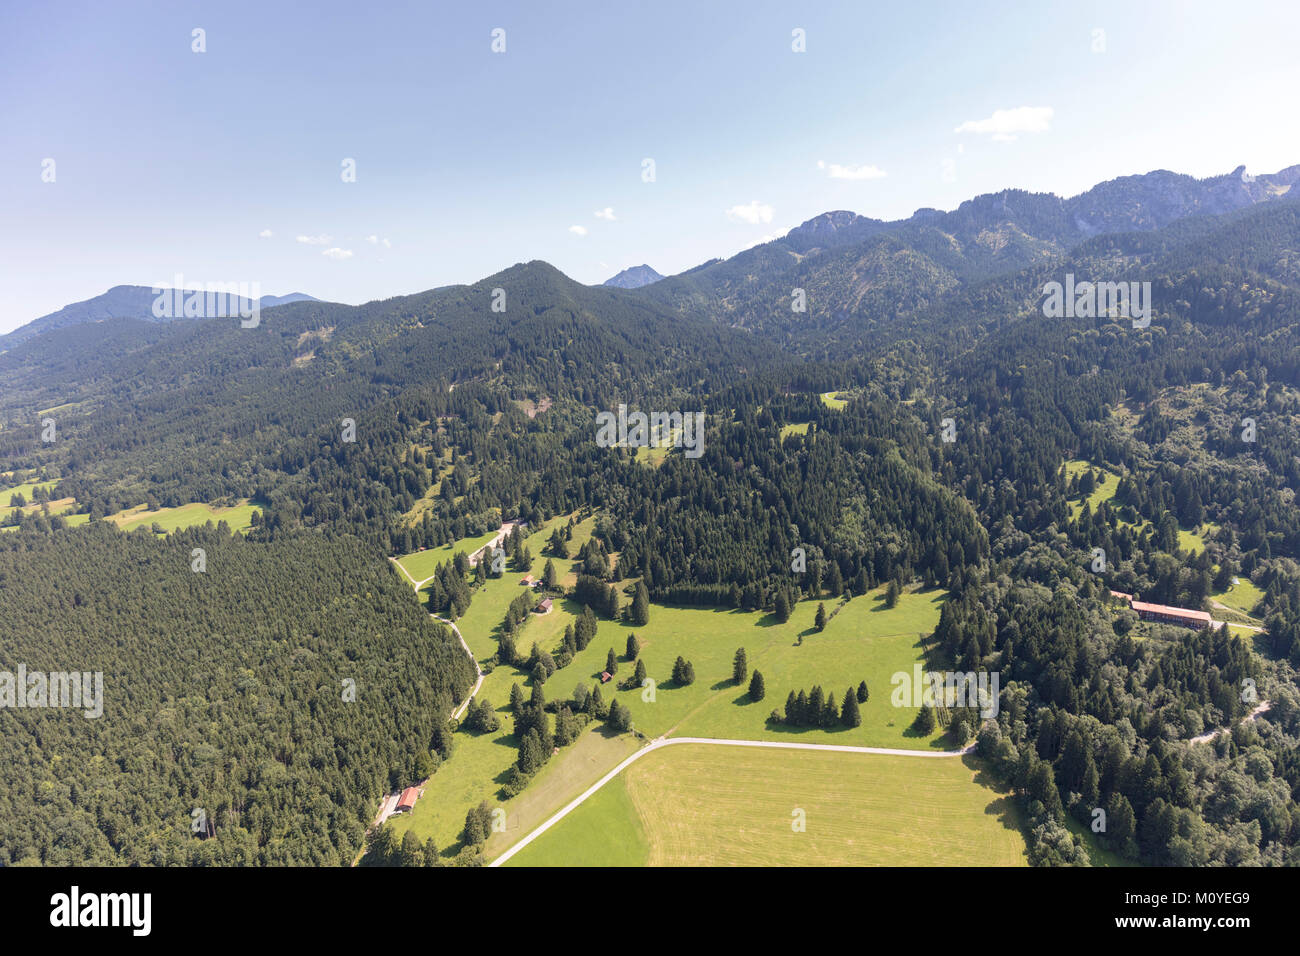 Areal View of countryside around Berghausstraße 87645 Schwangau, Germany - Stock Image